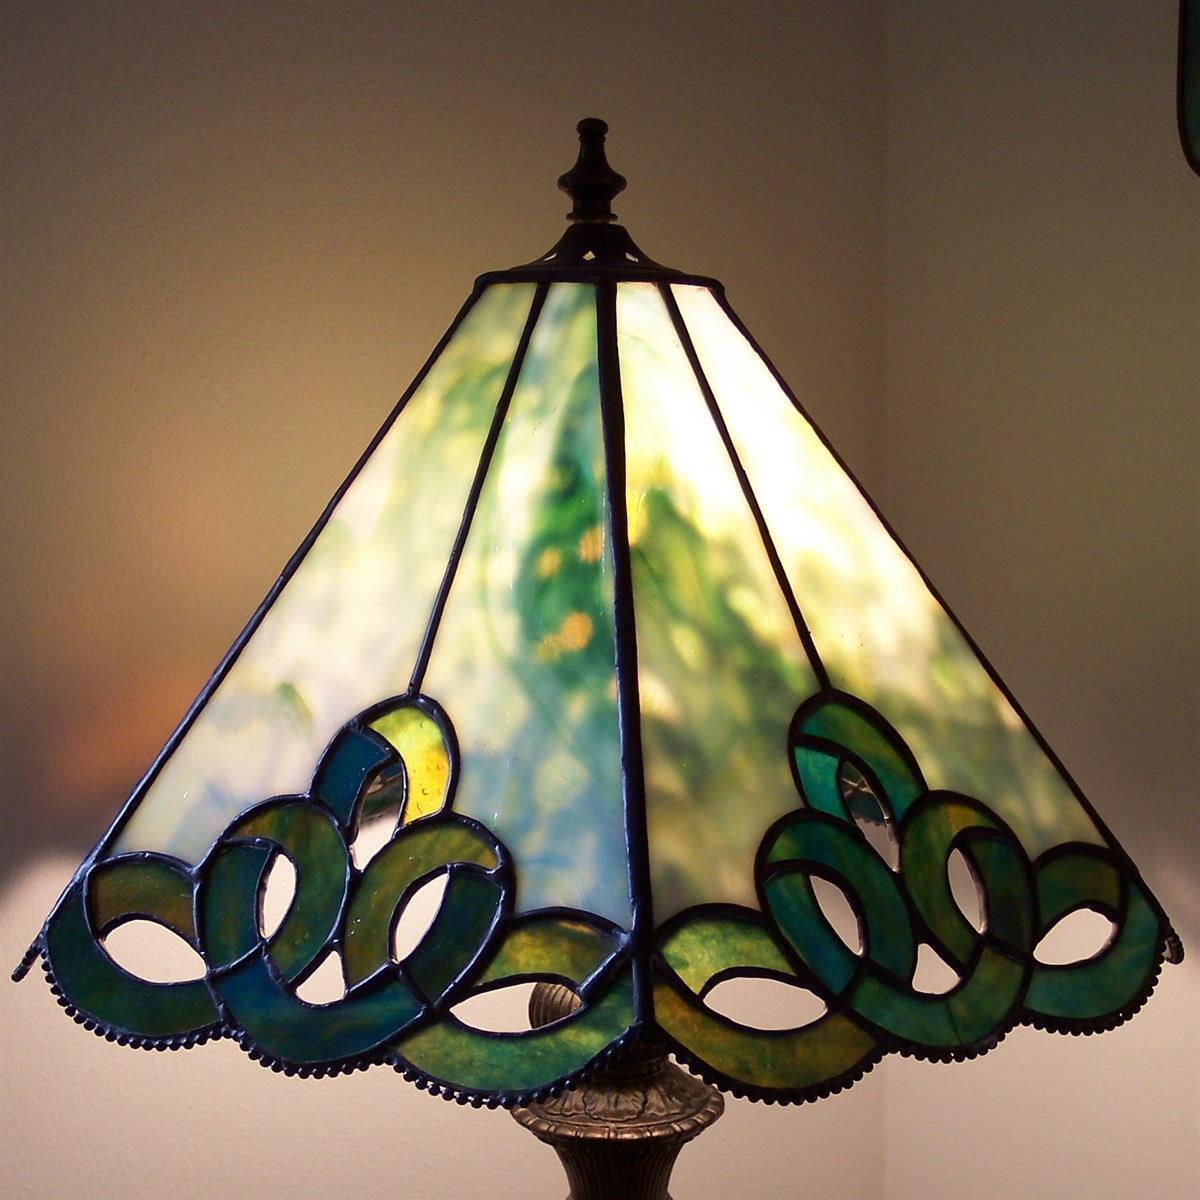 Intermediate Lamp class example